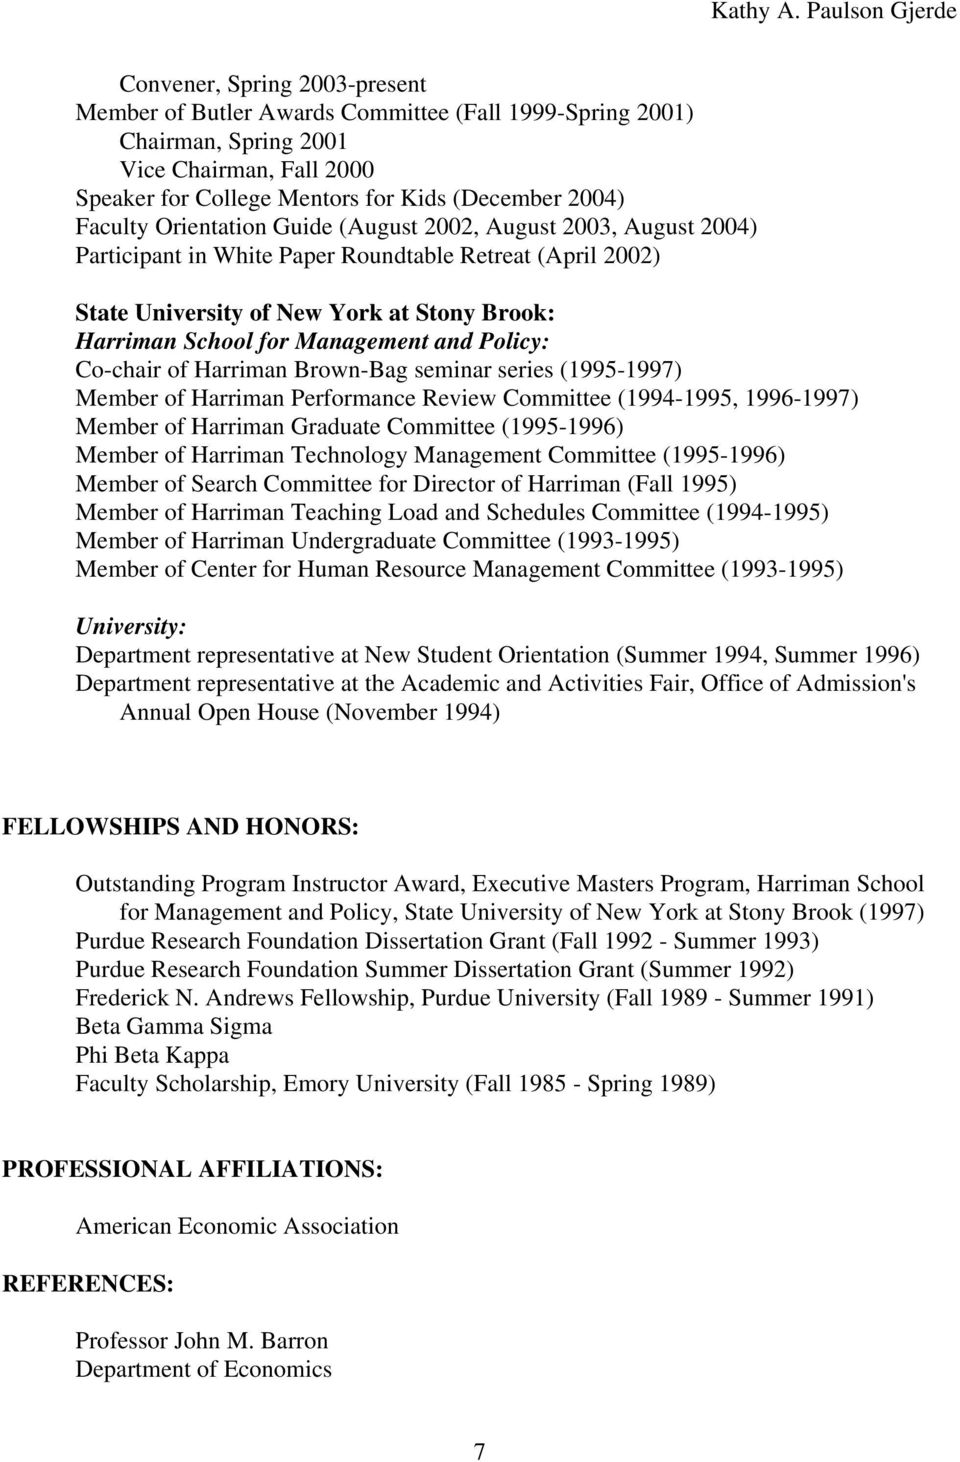 Policy: Co-chair of Harriman Brown-Bag seminar series (1995-1997) Member of Harriman Performance Review Committee (1994-1995, 1996-1997) Member of Harriman Graduate Committee (1995-1996) Member of